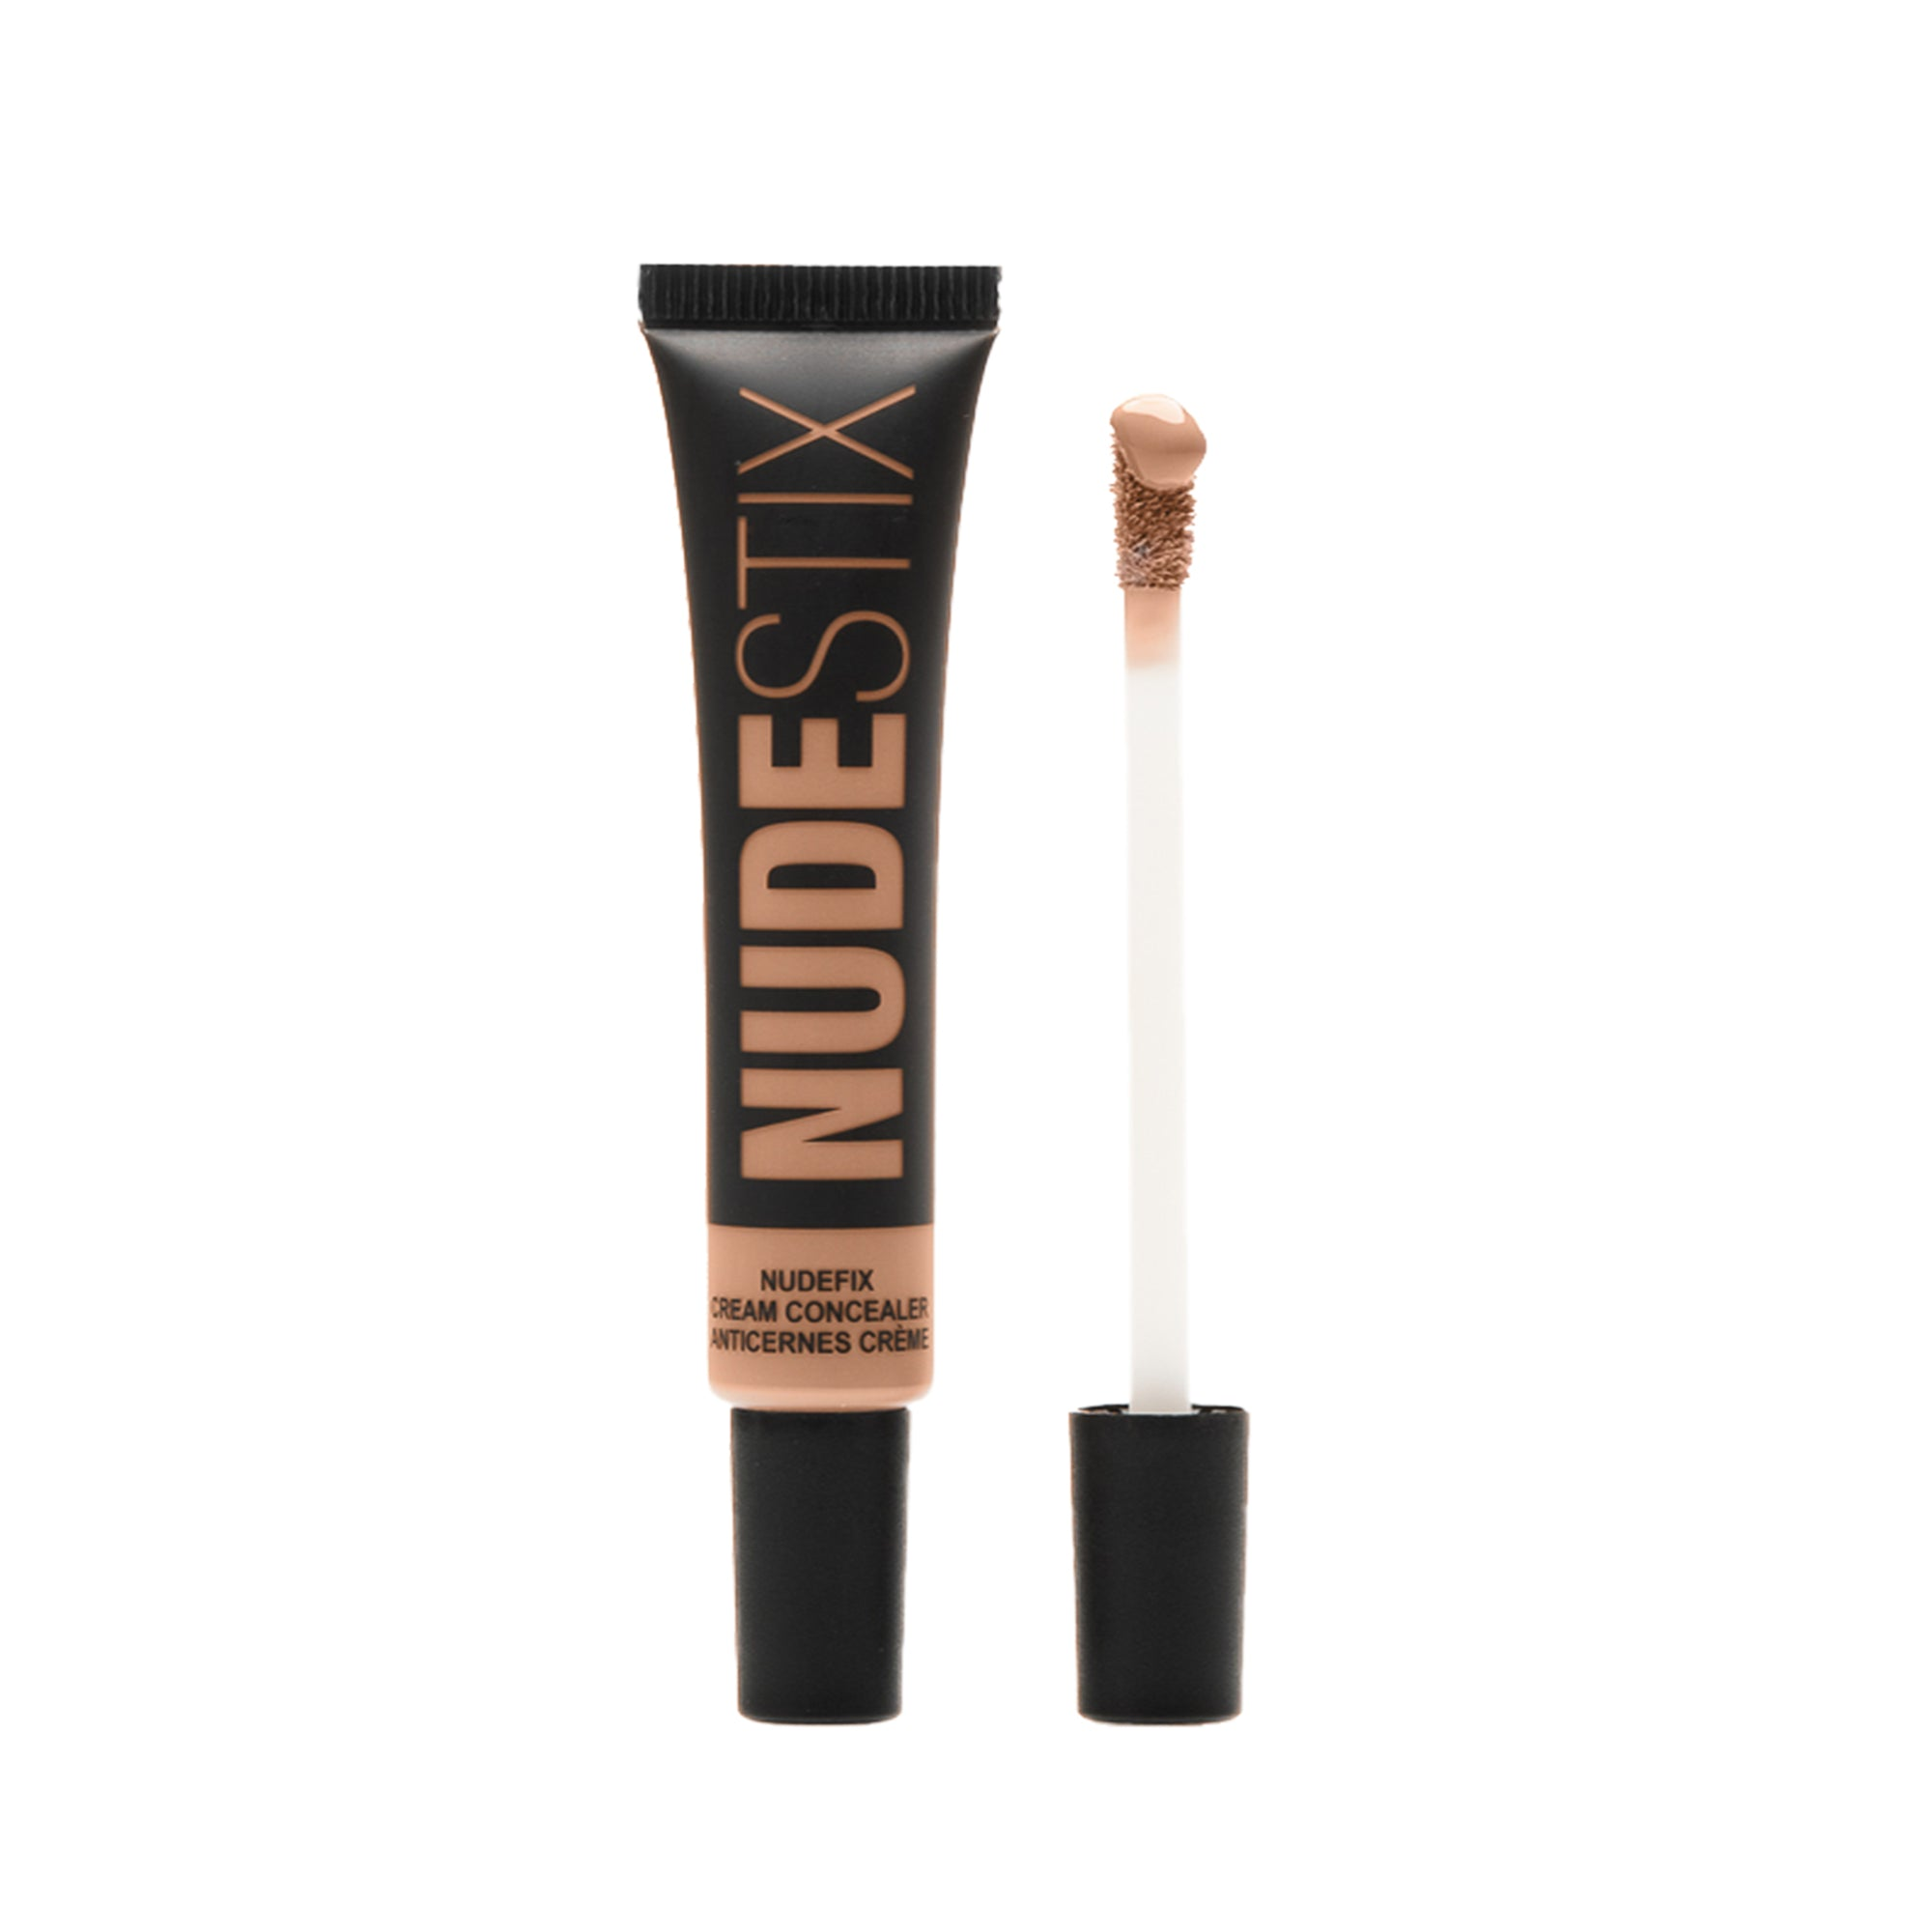 Nude 7 ~ 3ML, Nudefix Concealer in Nude 7 (4783673311325), 10ML